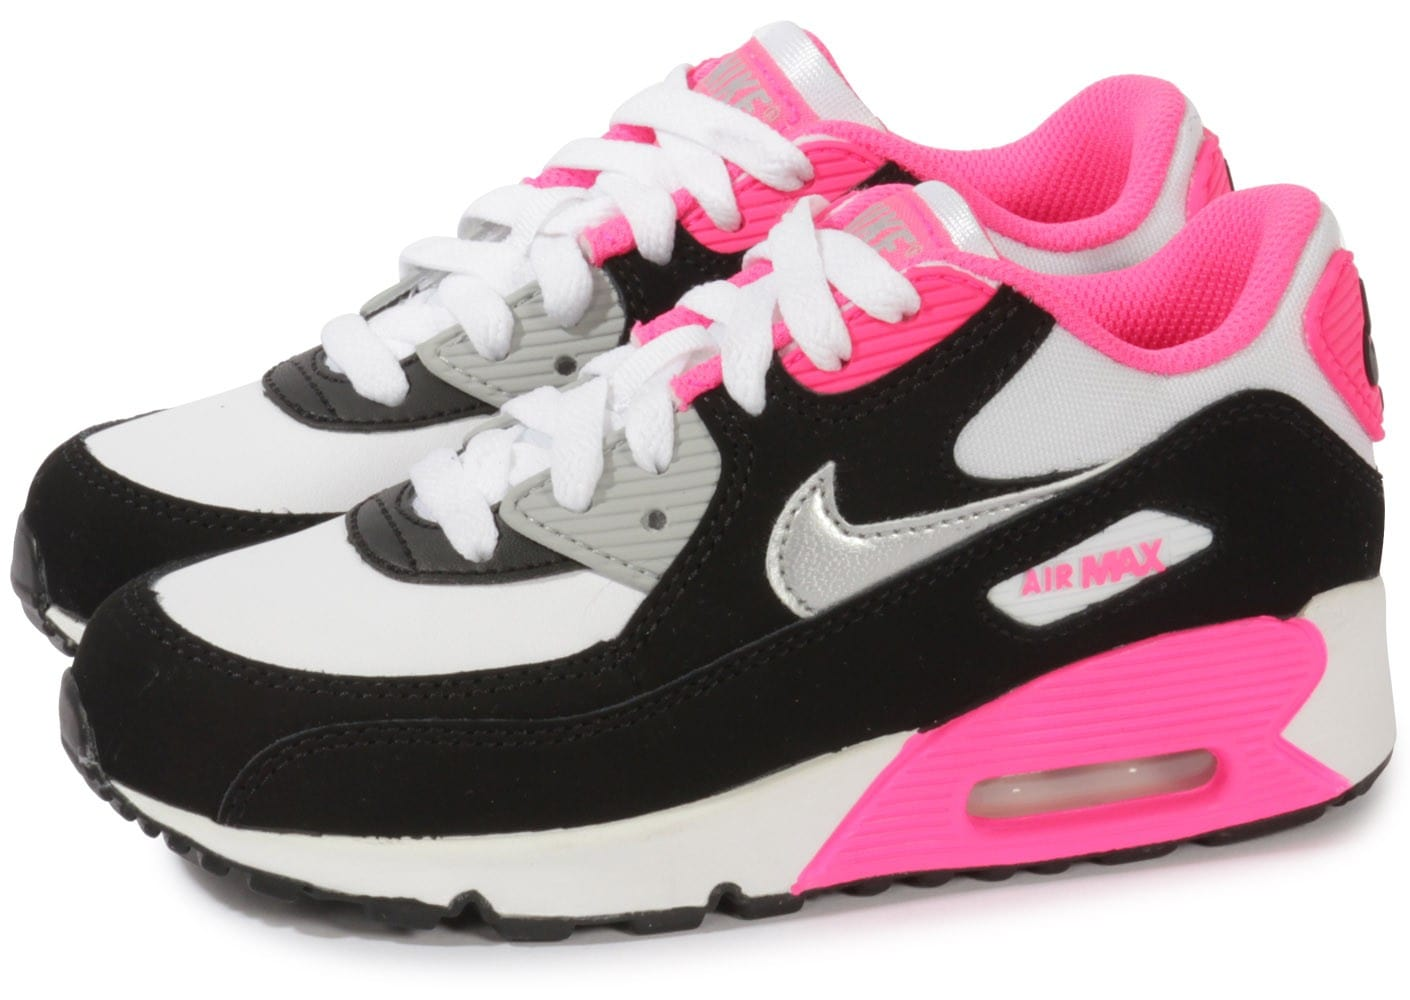 nike air max 90 enfant rose chaussures chaussures chausport. Black Bedroom Furniture Sets. Home Design Ideas